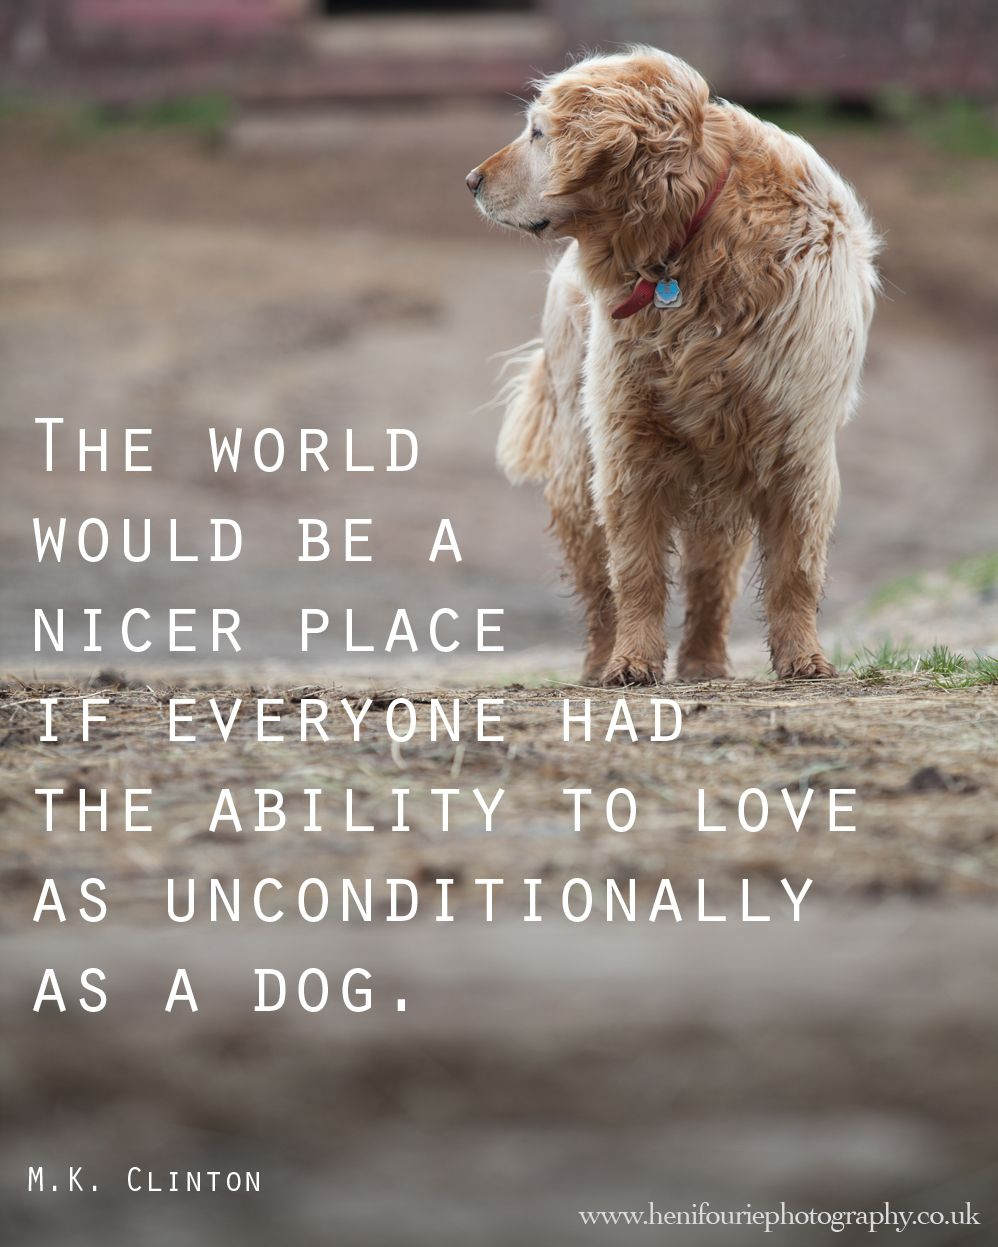 A man's best friend! Quotes   Heni Fourie Photography | puppies